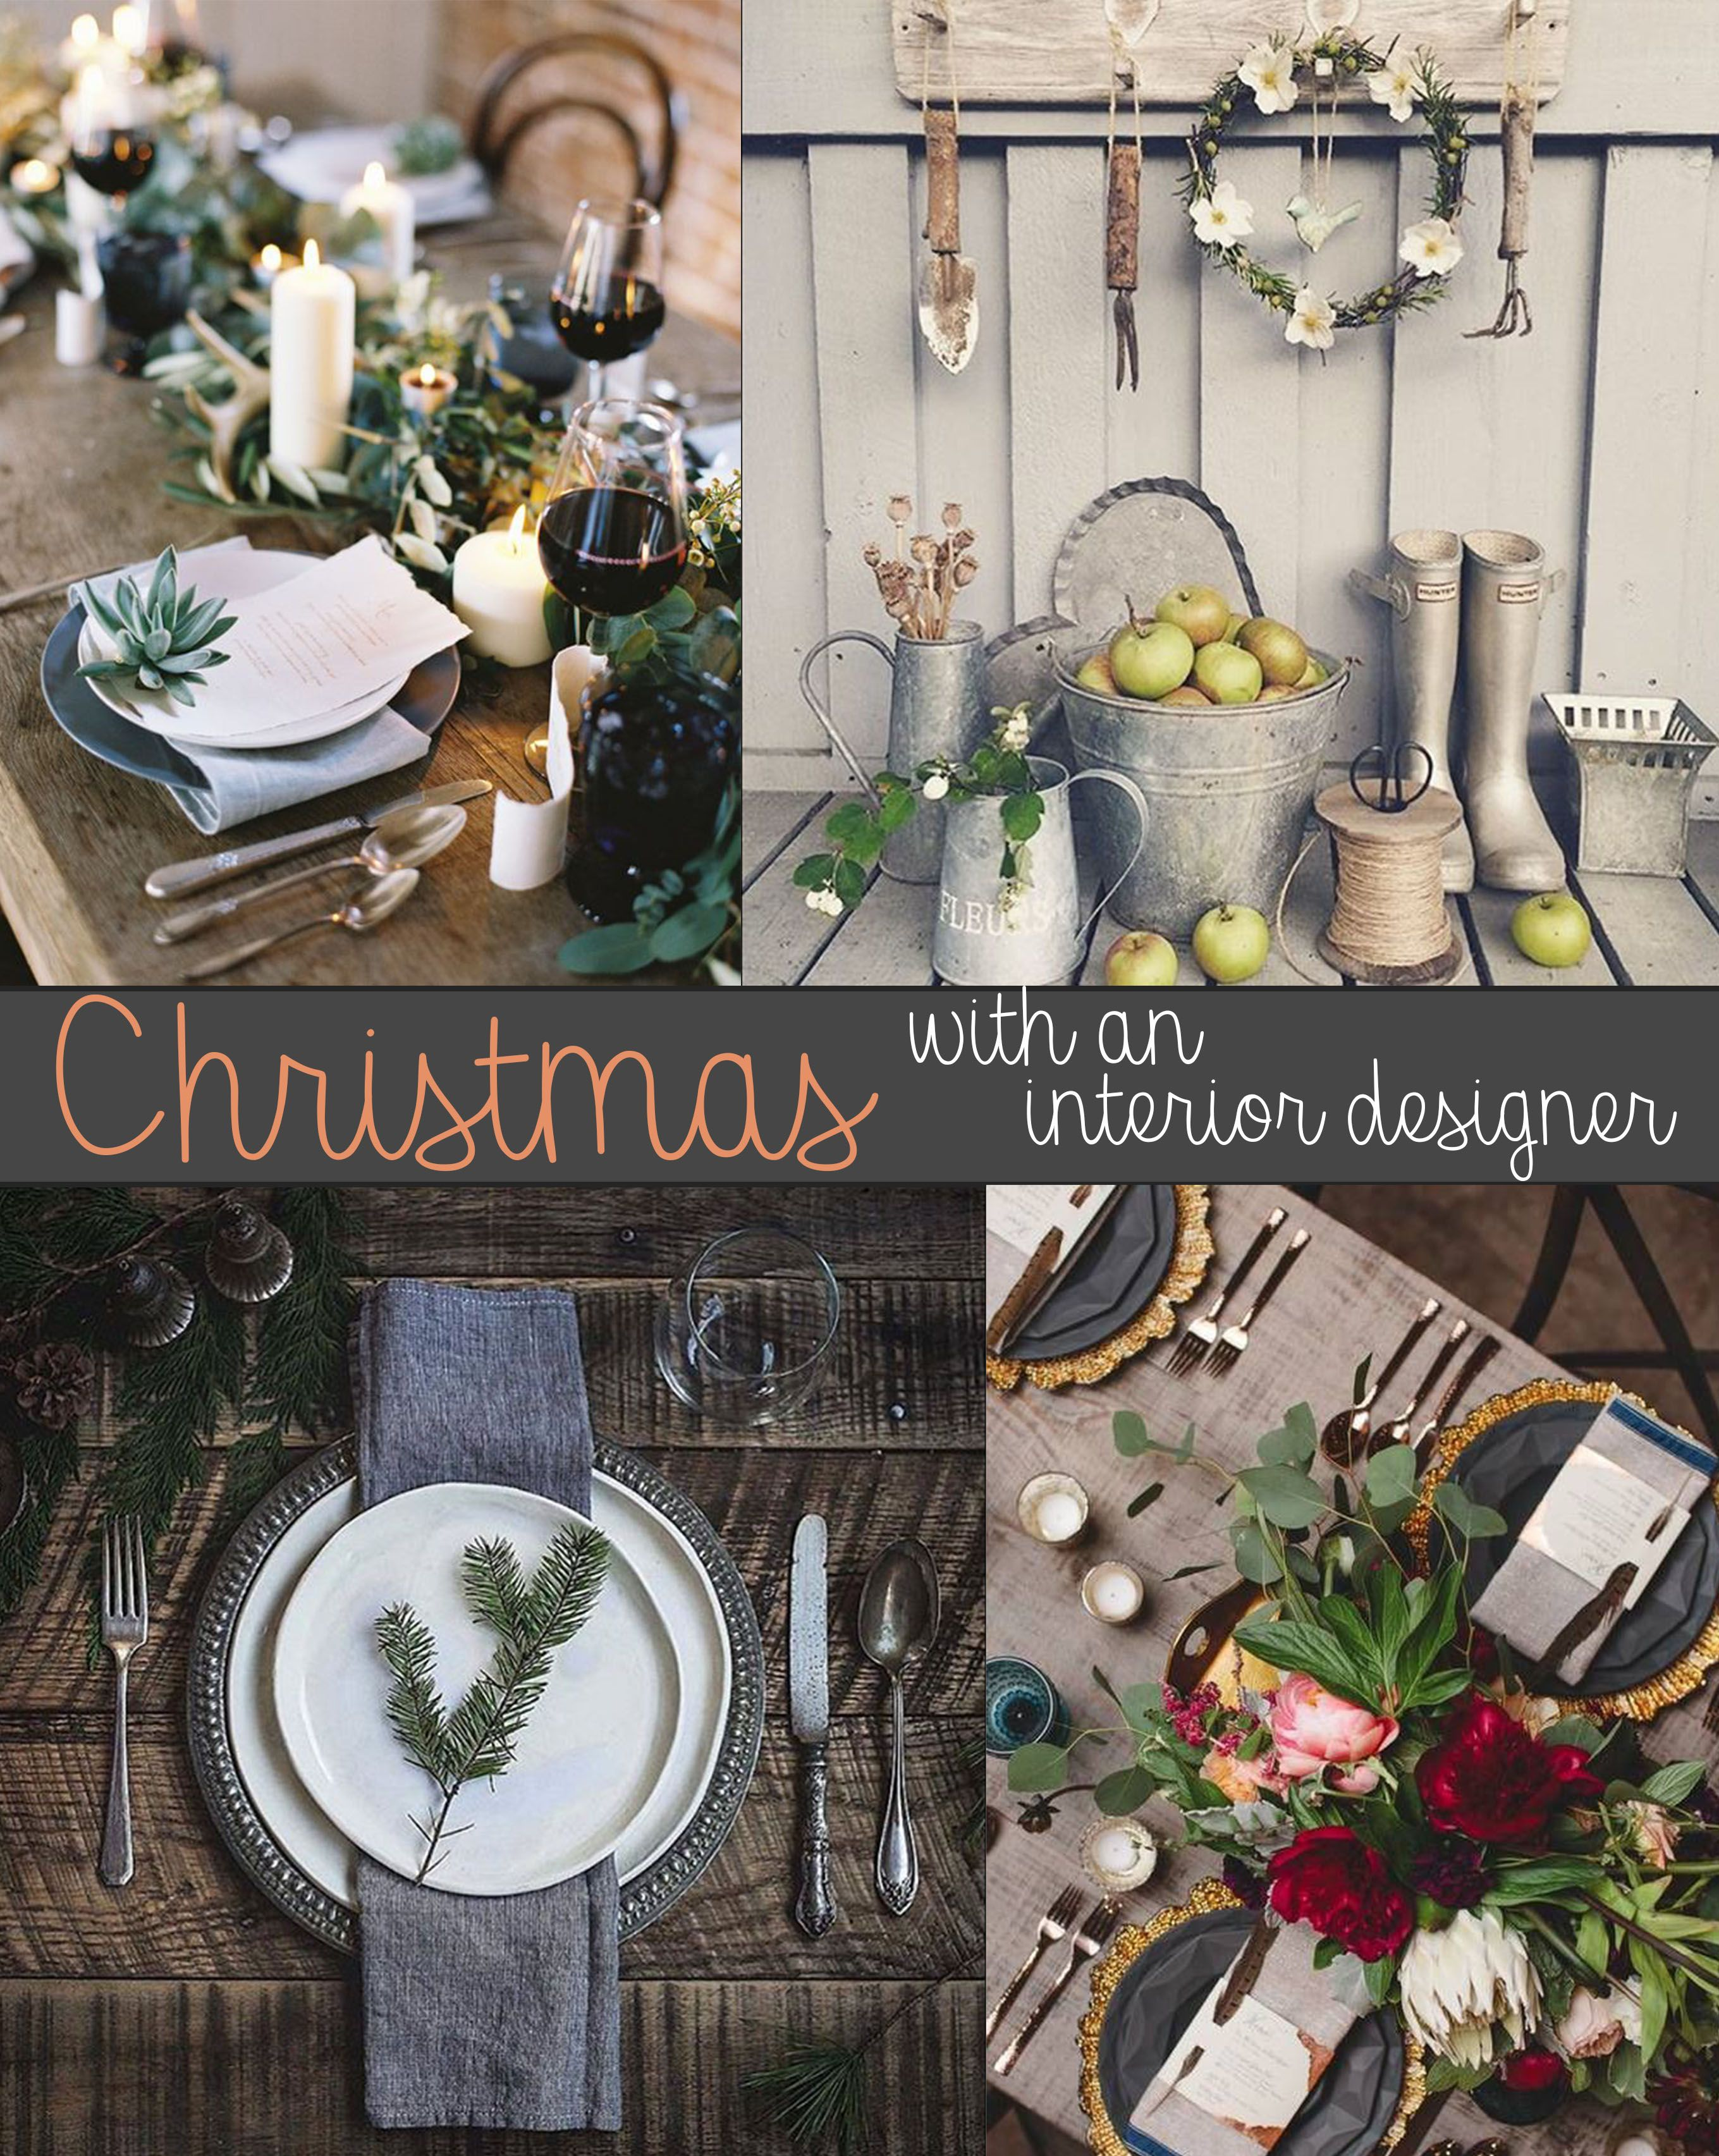 Take a look at our most beautiful Christmas Interior Design looks. From beautiful room displays to Christmas table decorations, take a look at our favourite looks.